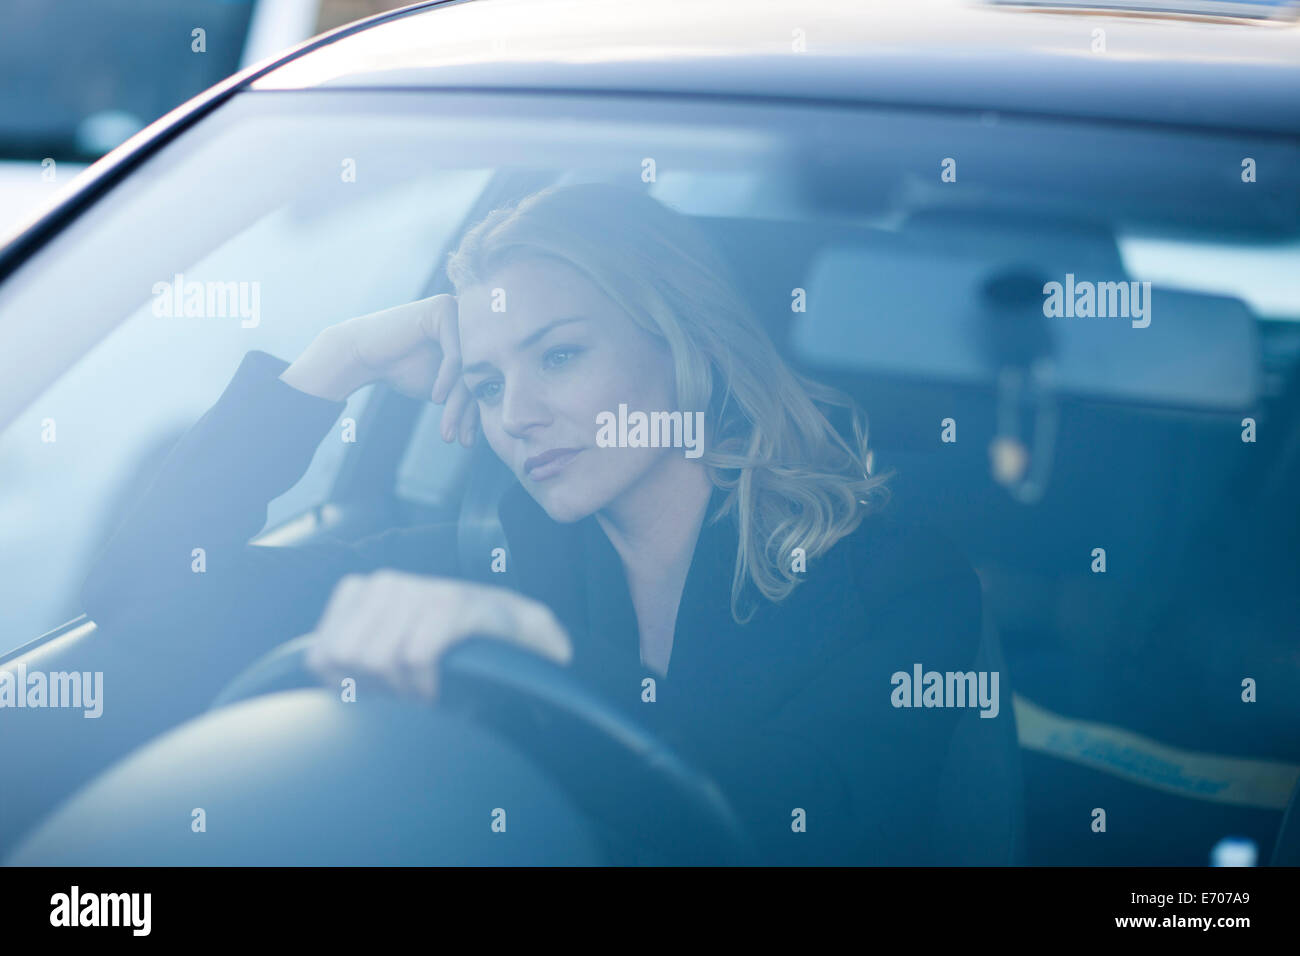 Bored businesswoman staring whilst driving in city traffic jam - Stock Image